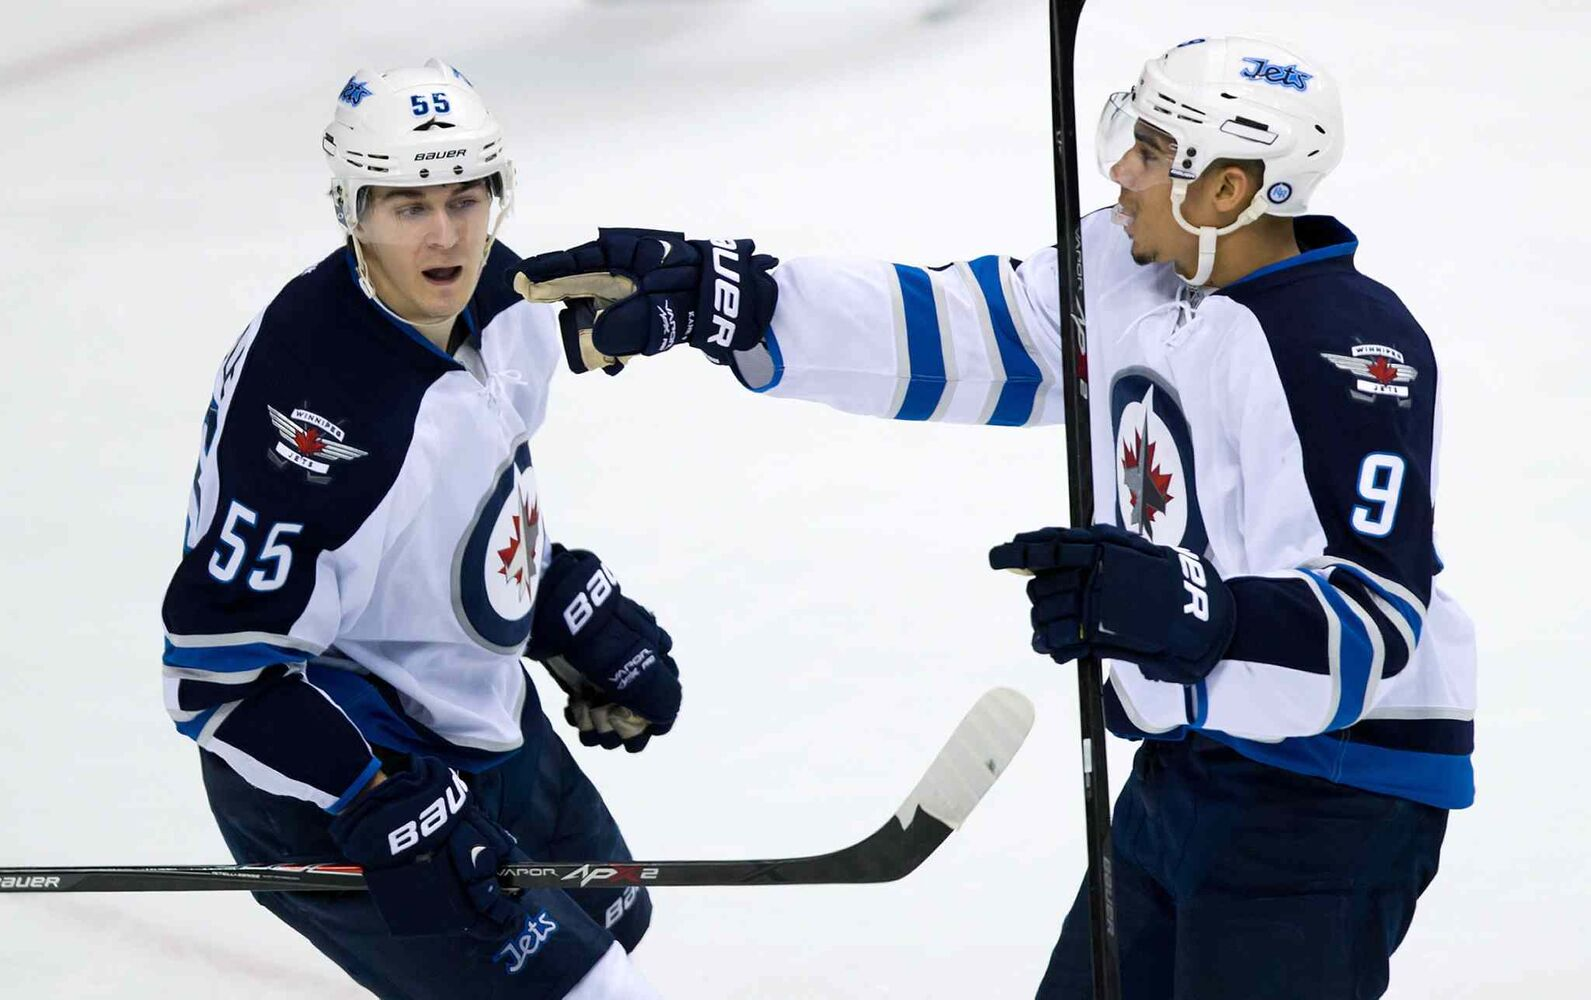 Winnipeg Jets forward Evander Kane (right) and Mark Scheifele celebrate Kane's goal against the Vancouver Canucks during the second period.